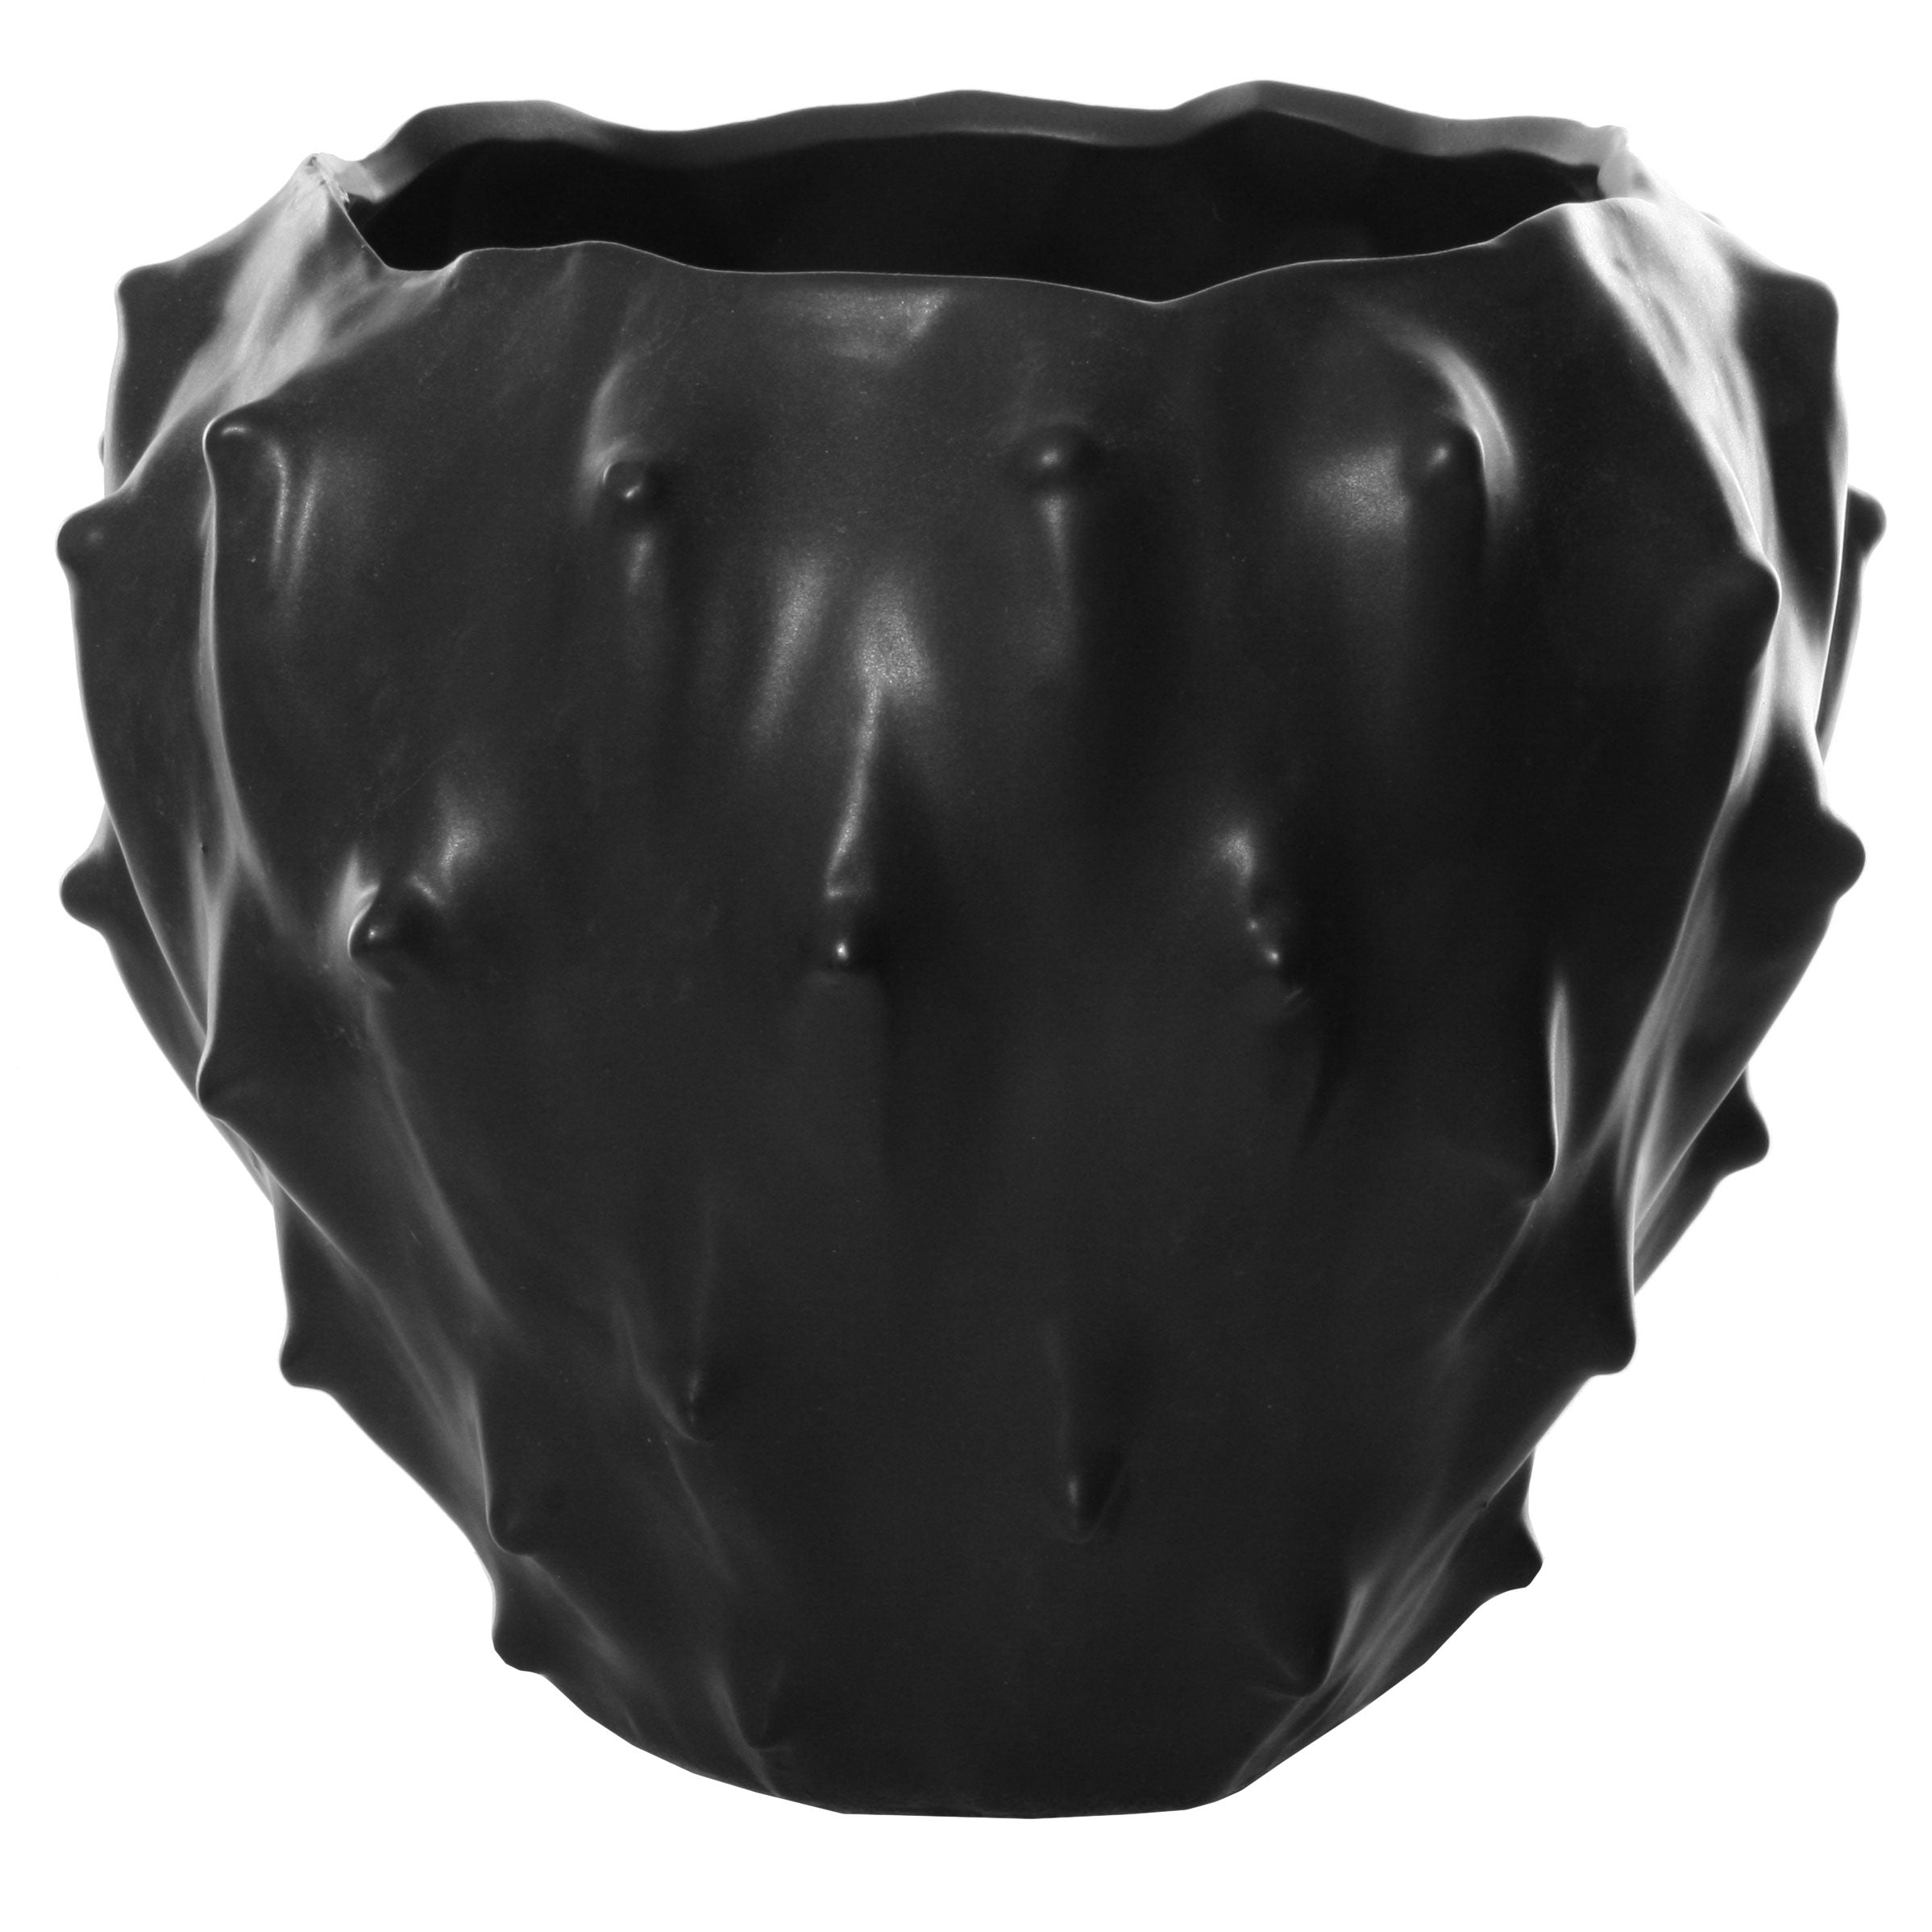 Spiny Pot Black